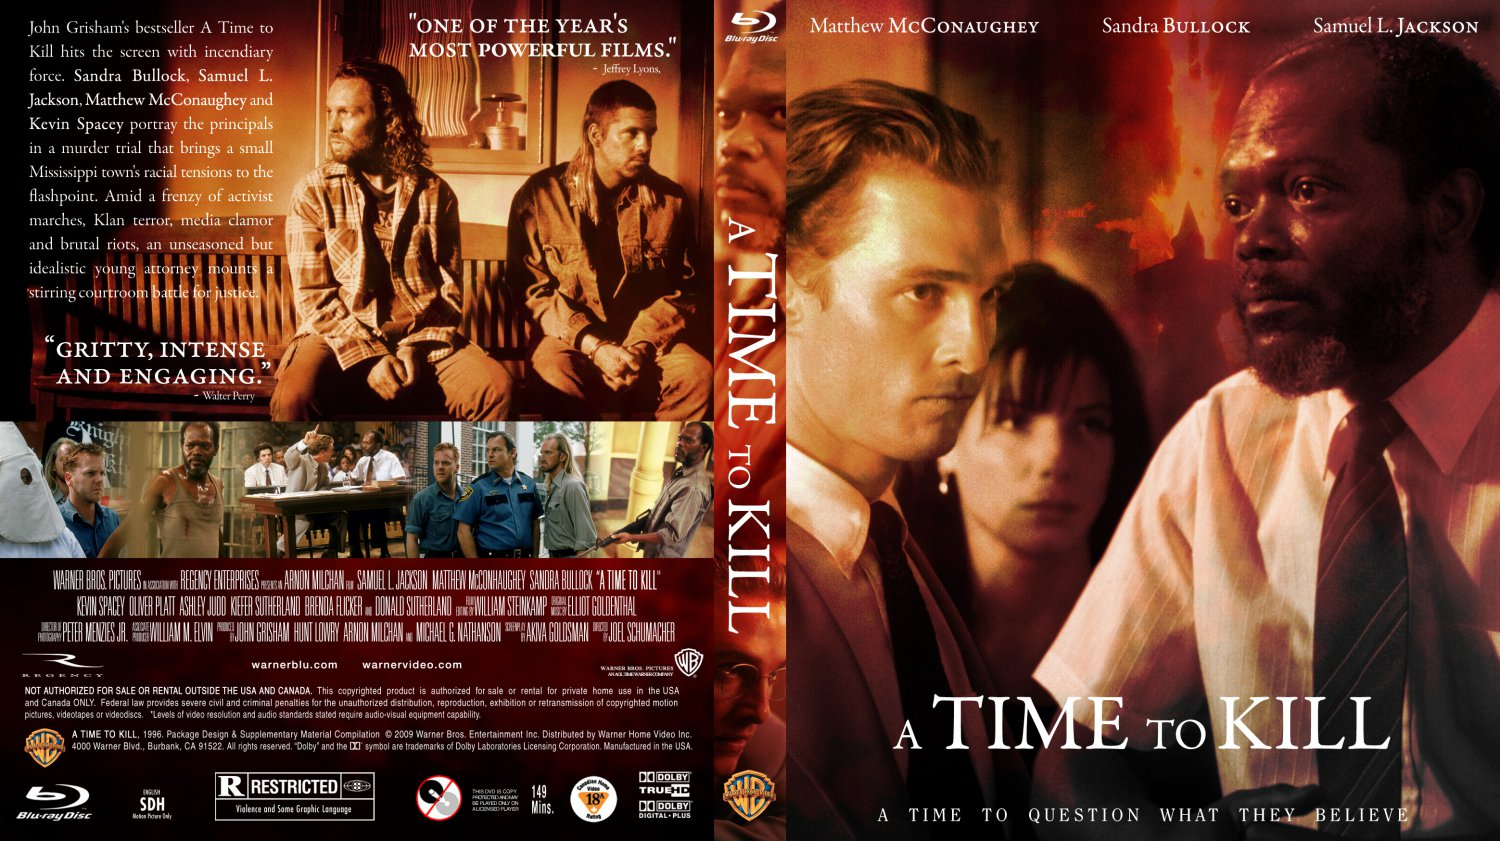 a movie review of a time to kill Time to kill is a 2014 film about sara (played by ellie church), who finds out she has 24 hours to live, and uses that time to (what else) kill some people this is the kind of movie that kind of hurts my head to review it's bad, but that's kind of the point it never pretends to be anything.